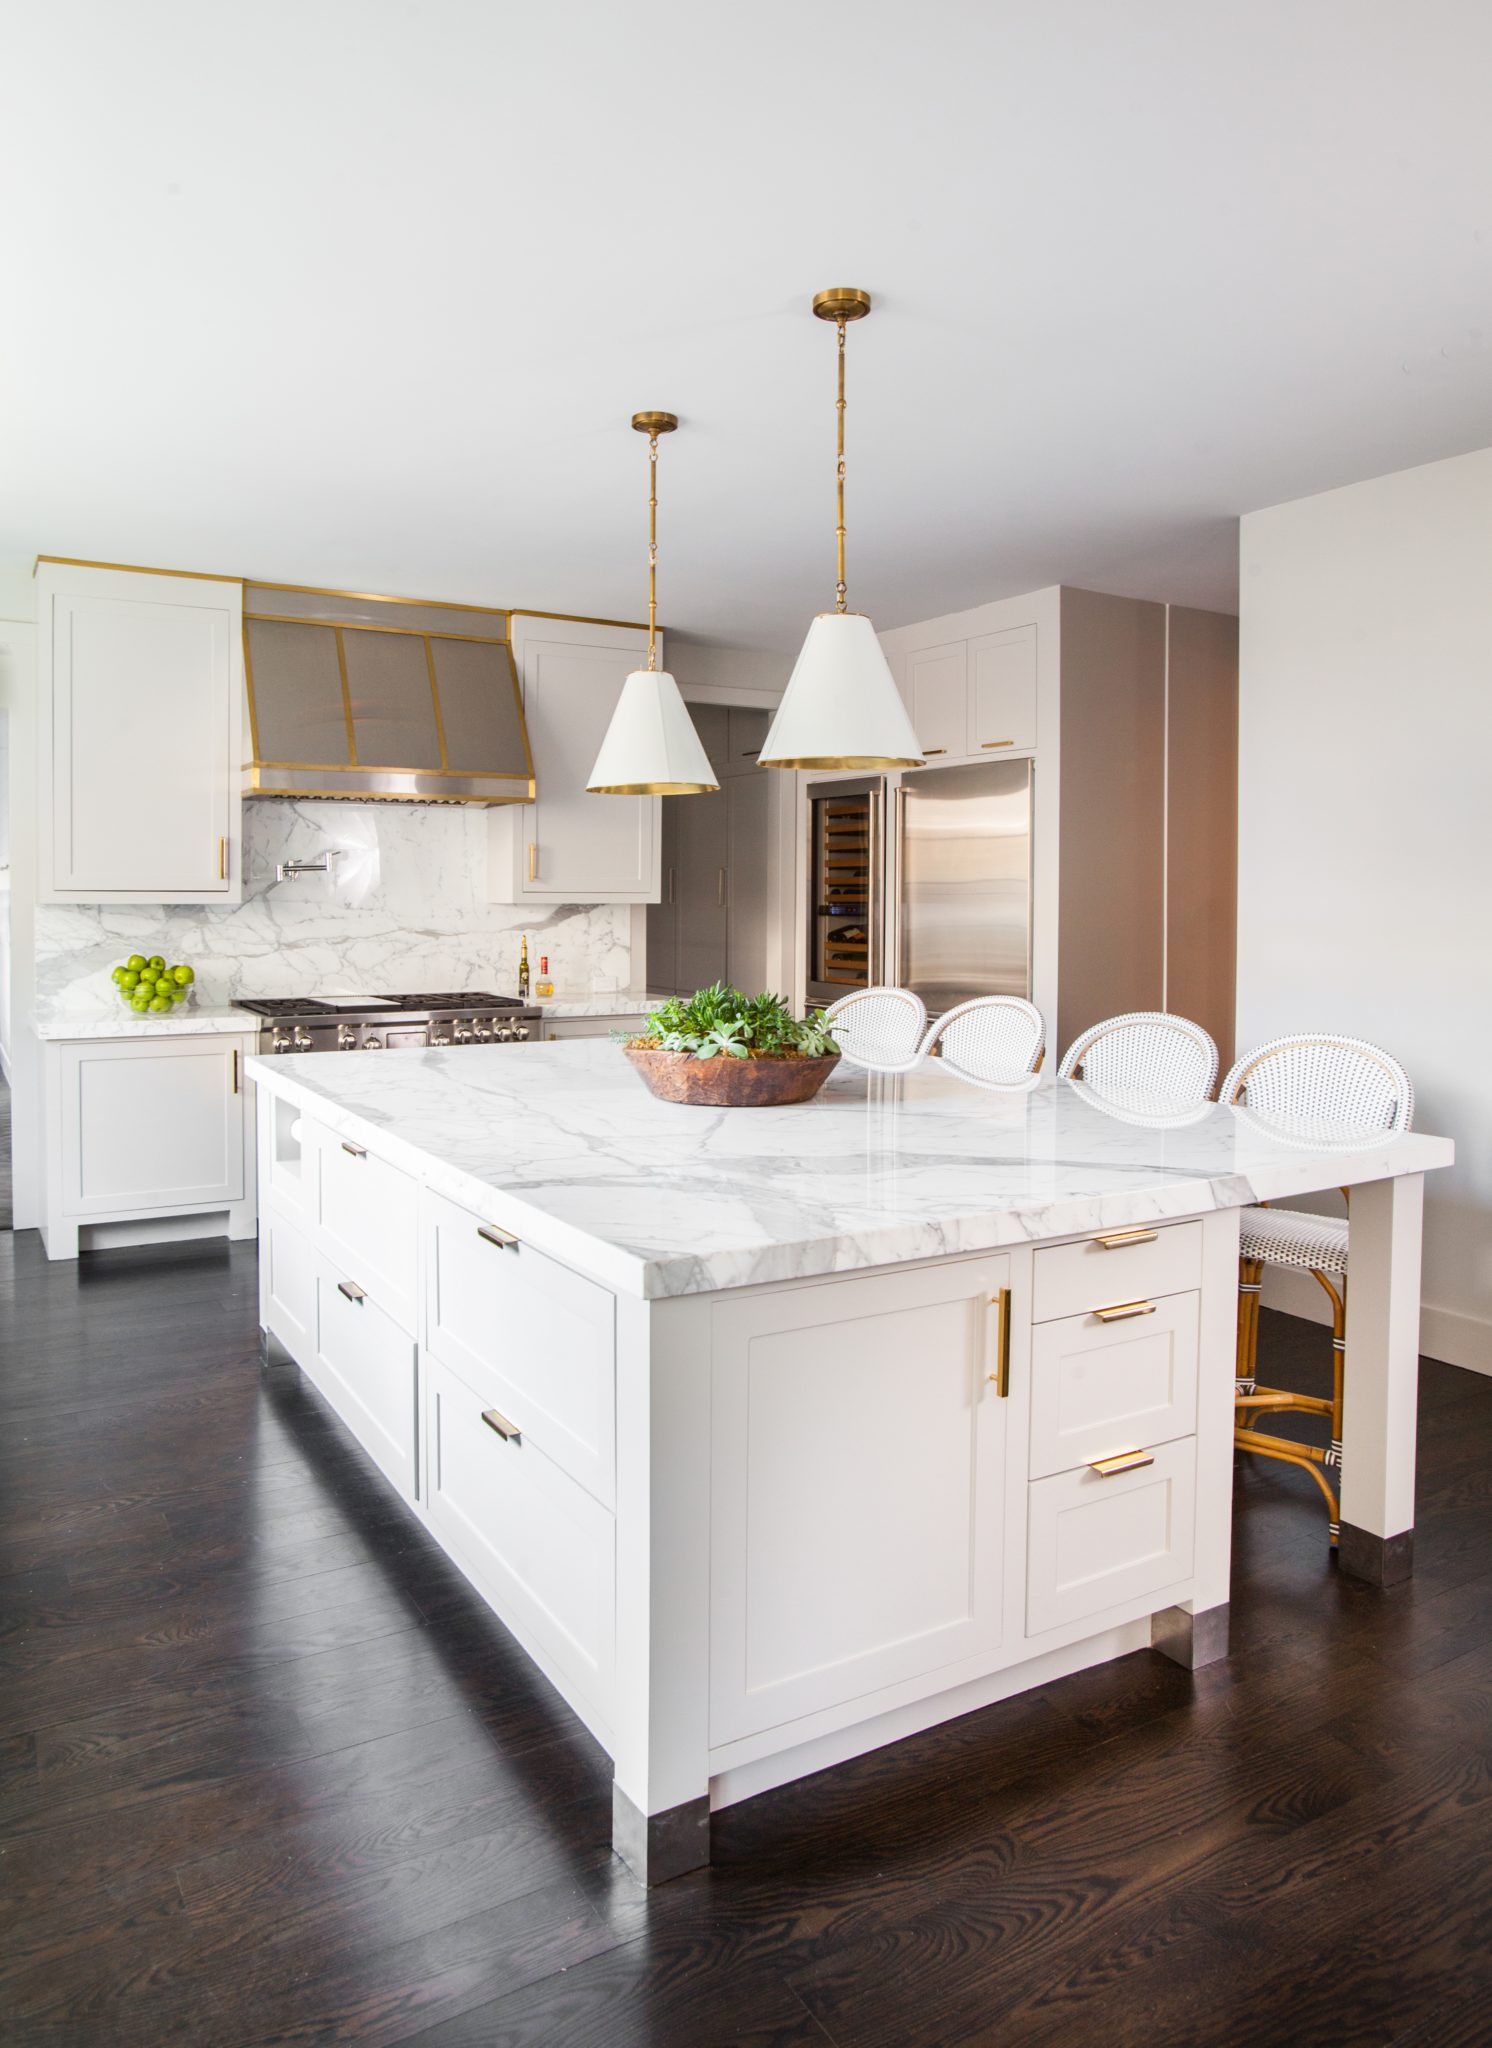 Marble accents and dark wood flooring in a kitchen design by Creative Tonic